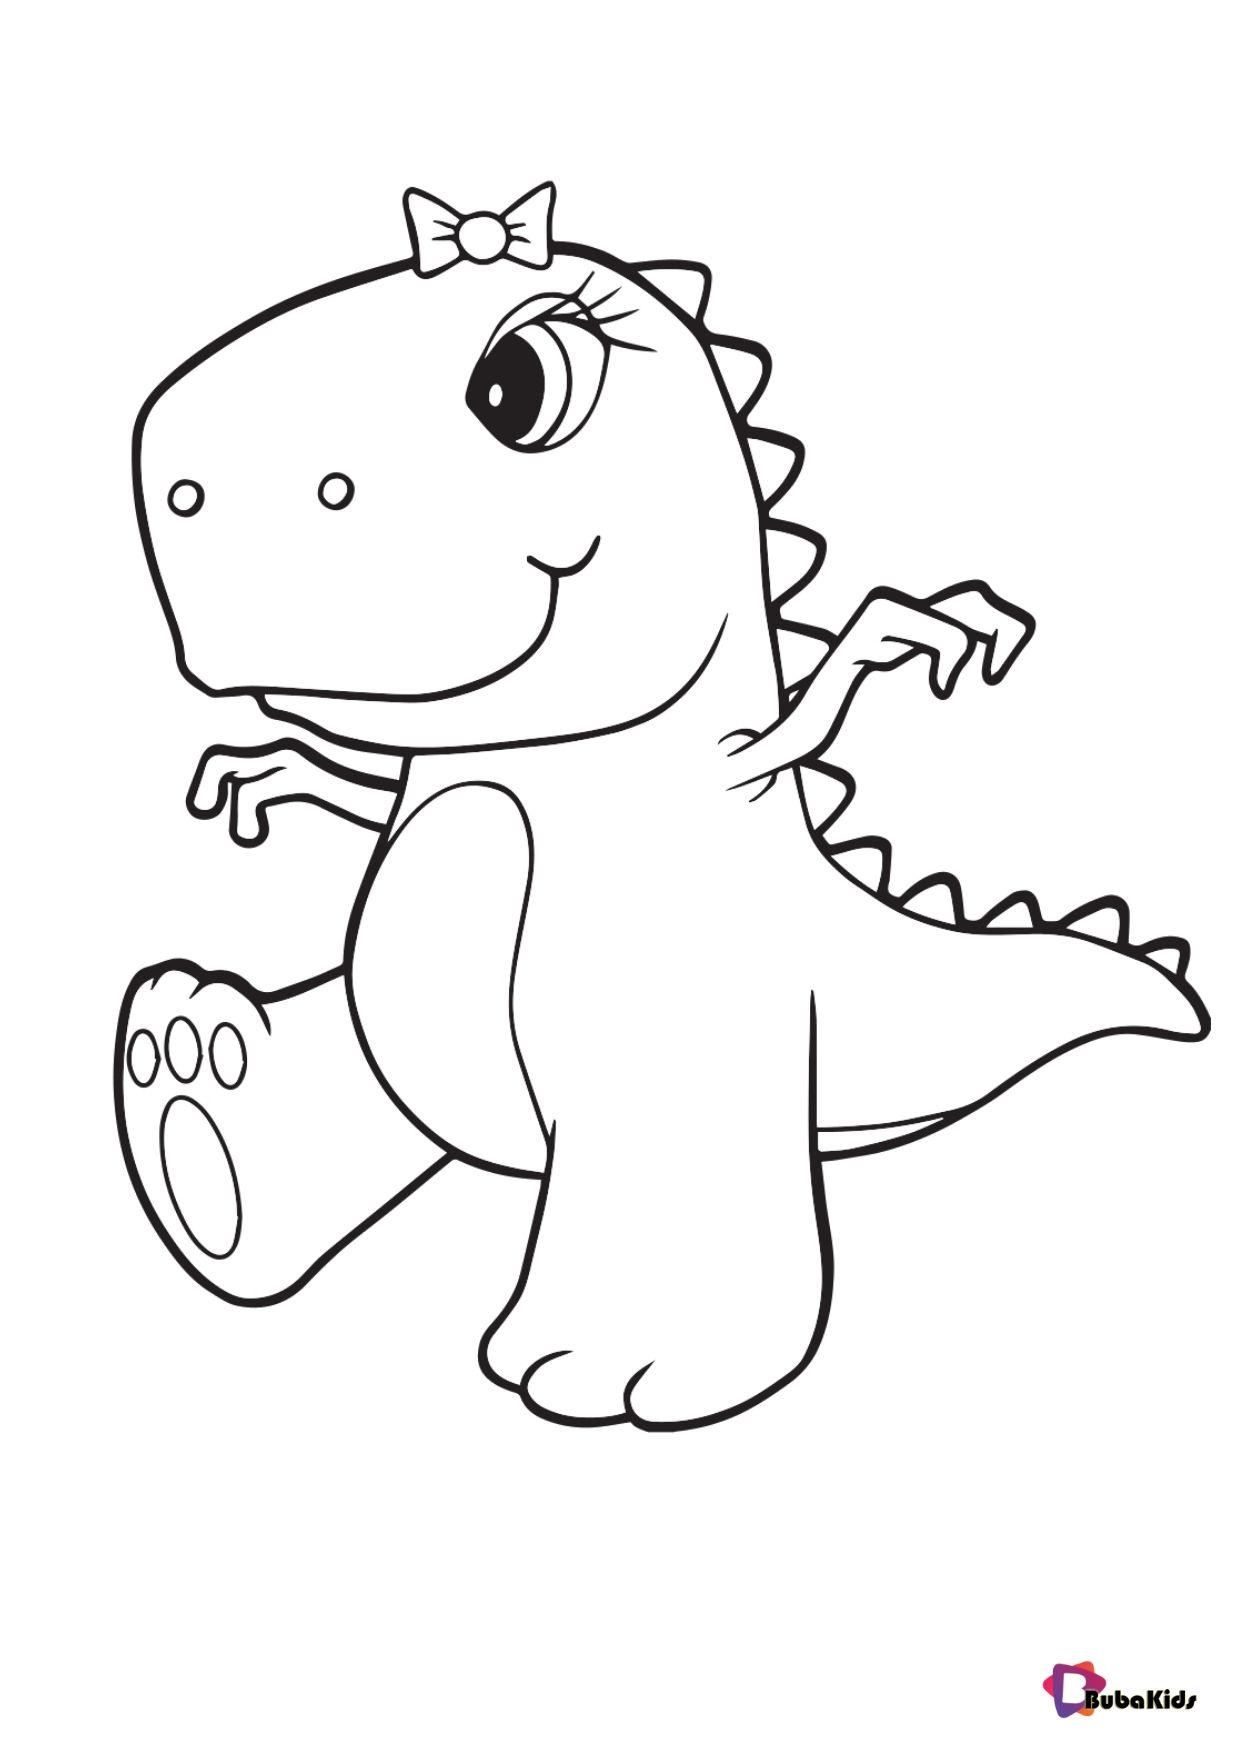 Pin On Dinosaurs Coloring Pages